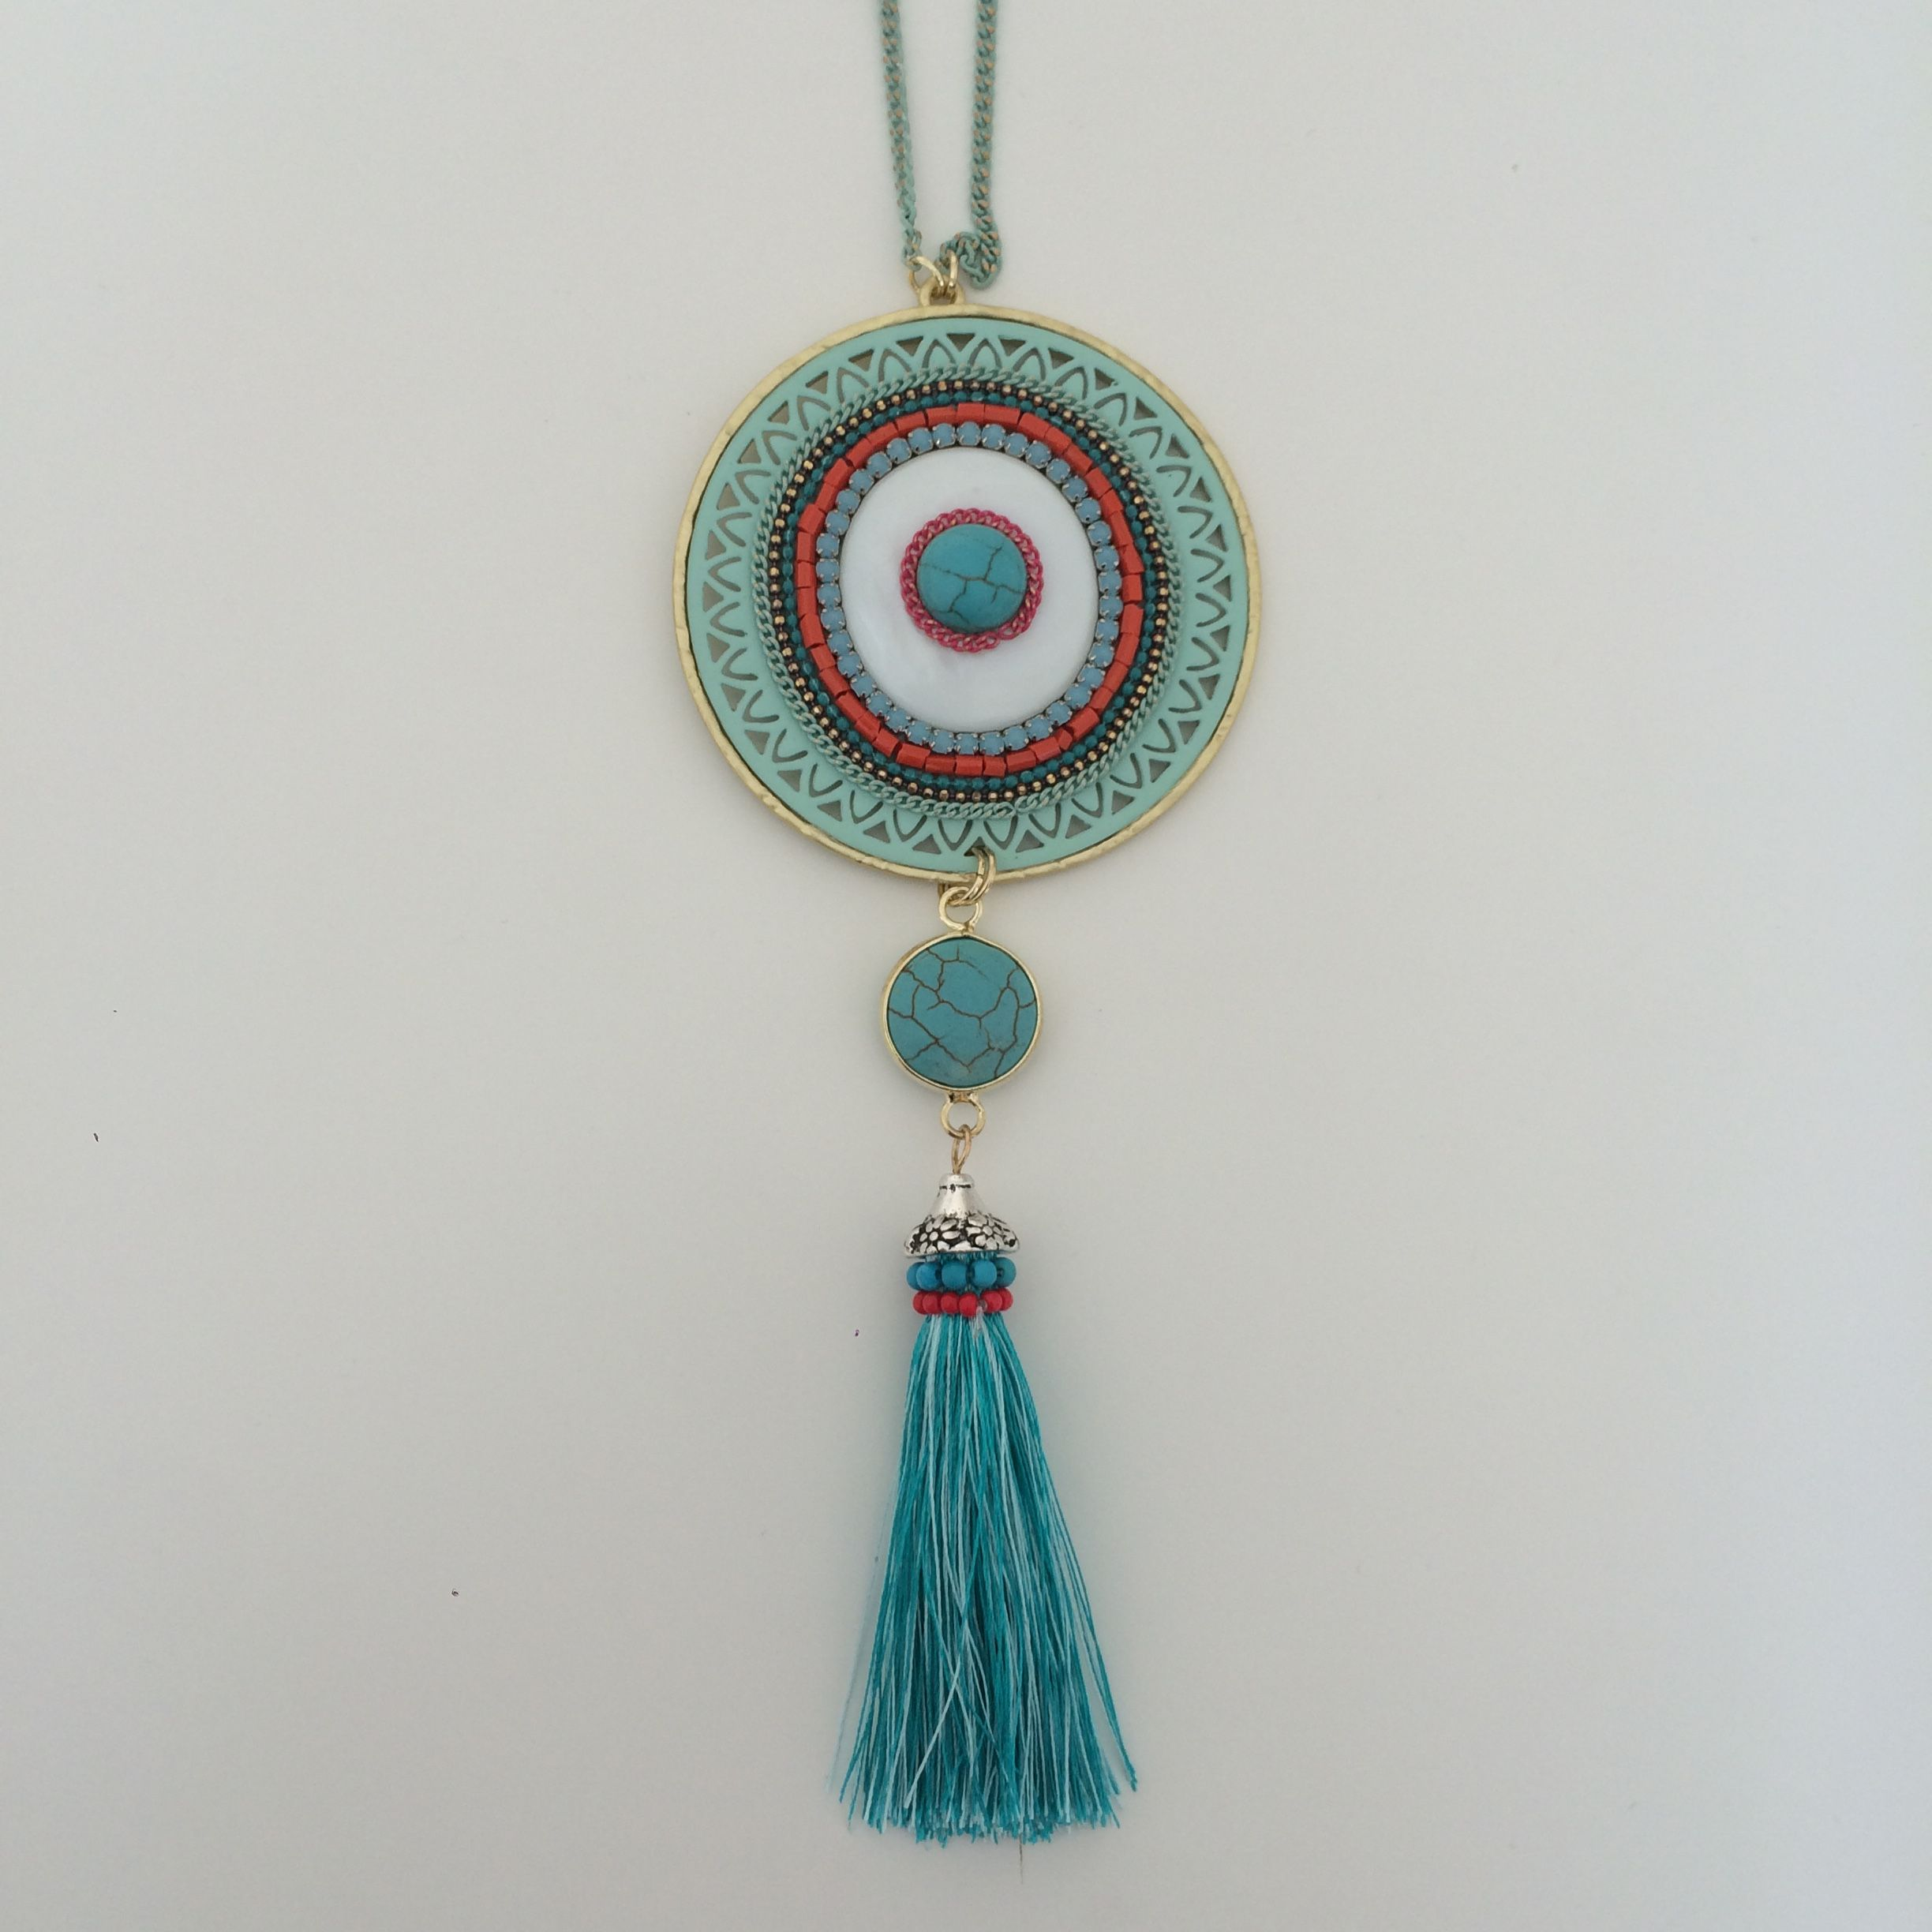 All about Jewellery and more.. Boho necklace, boho jewelry, hippie jewelry, ethnic jewelry, bohemian style accessories, colorful jewelry, colorful hippie necklace Indie Pouch, super trend 2017.